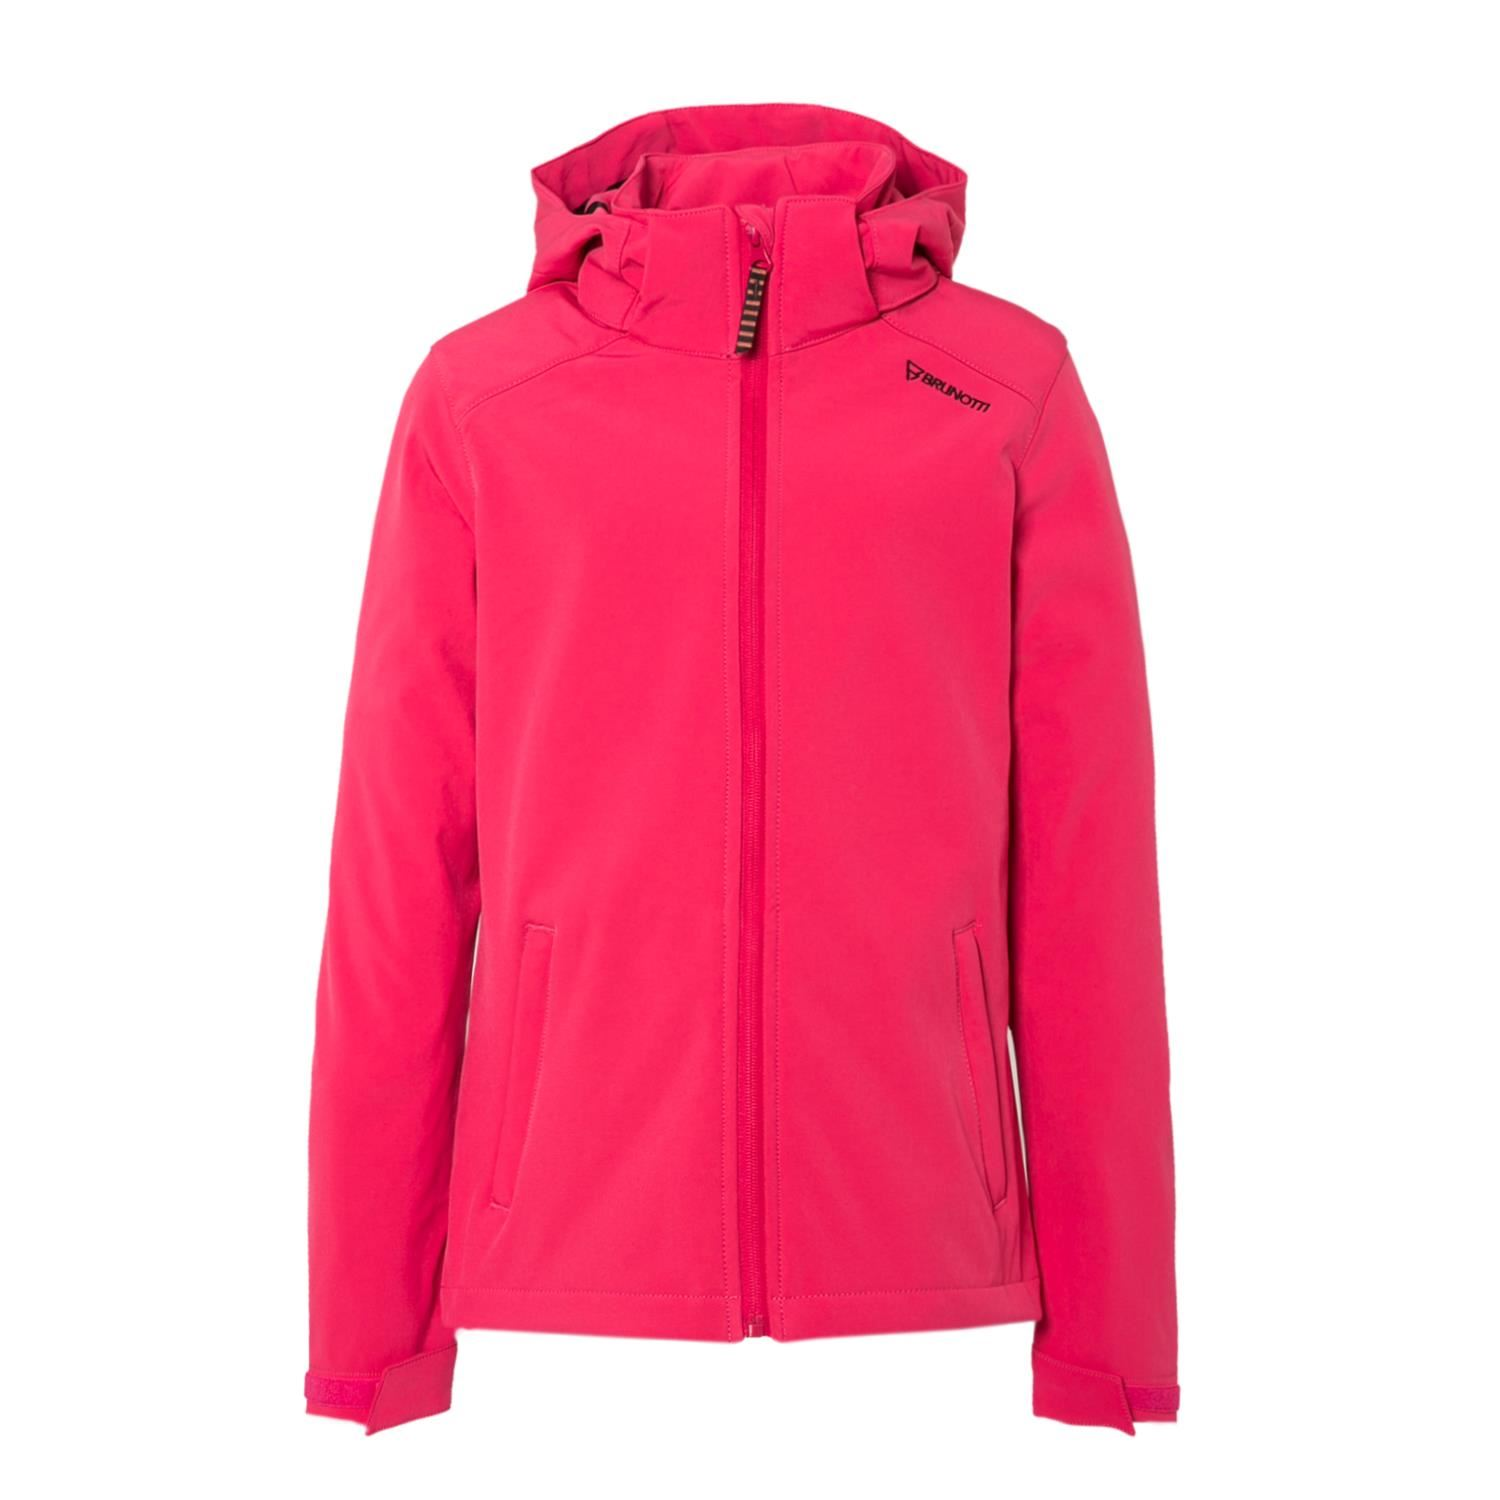 Brunotti Josky JR Girls Softshell Jacket